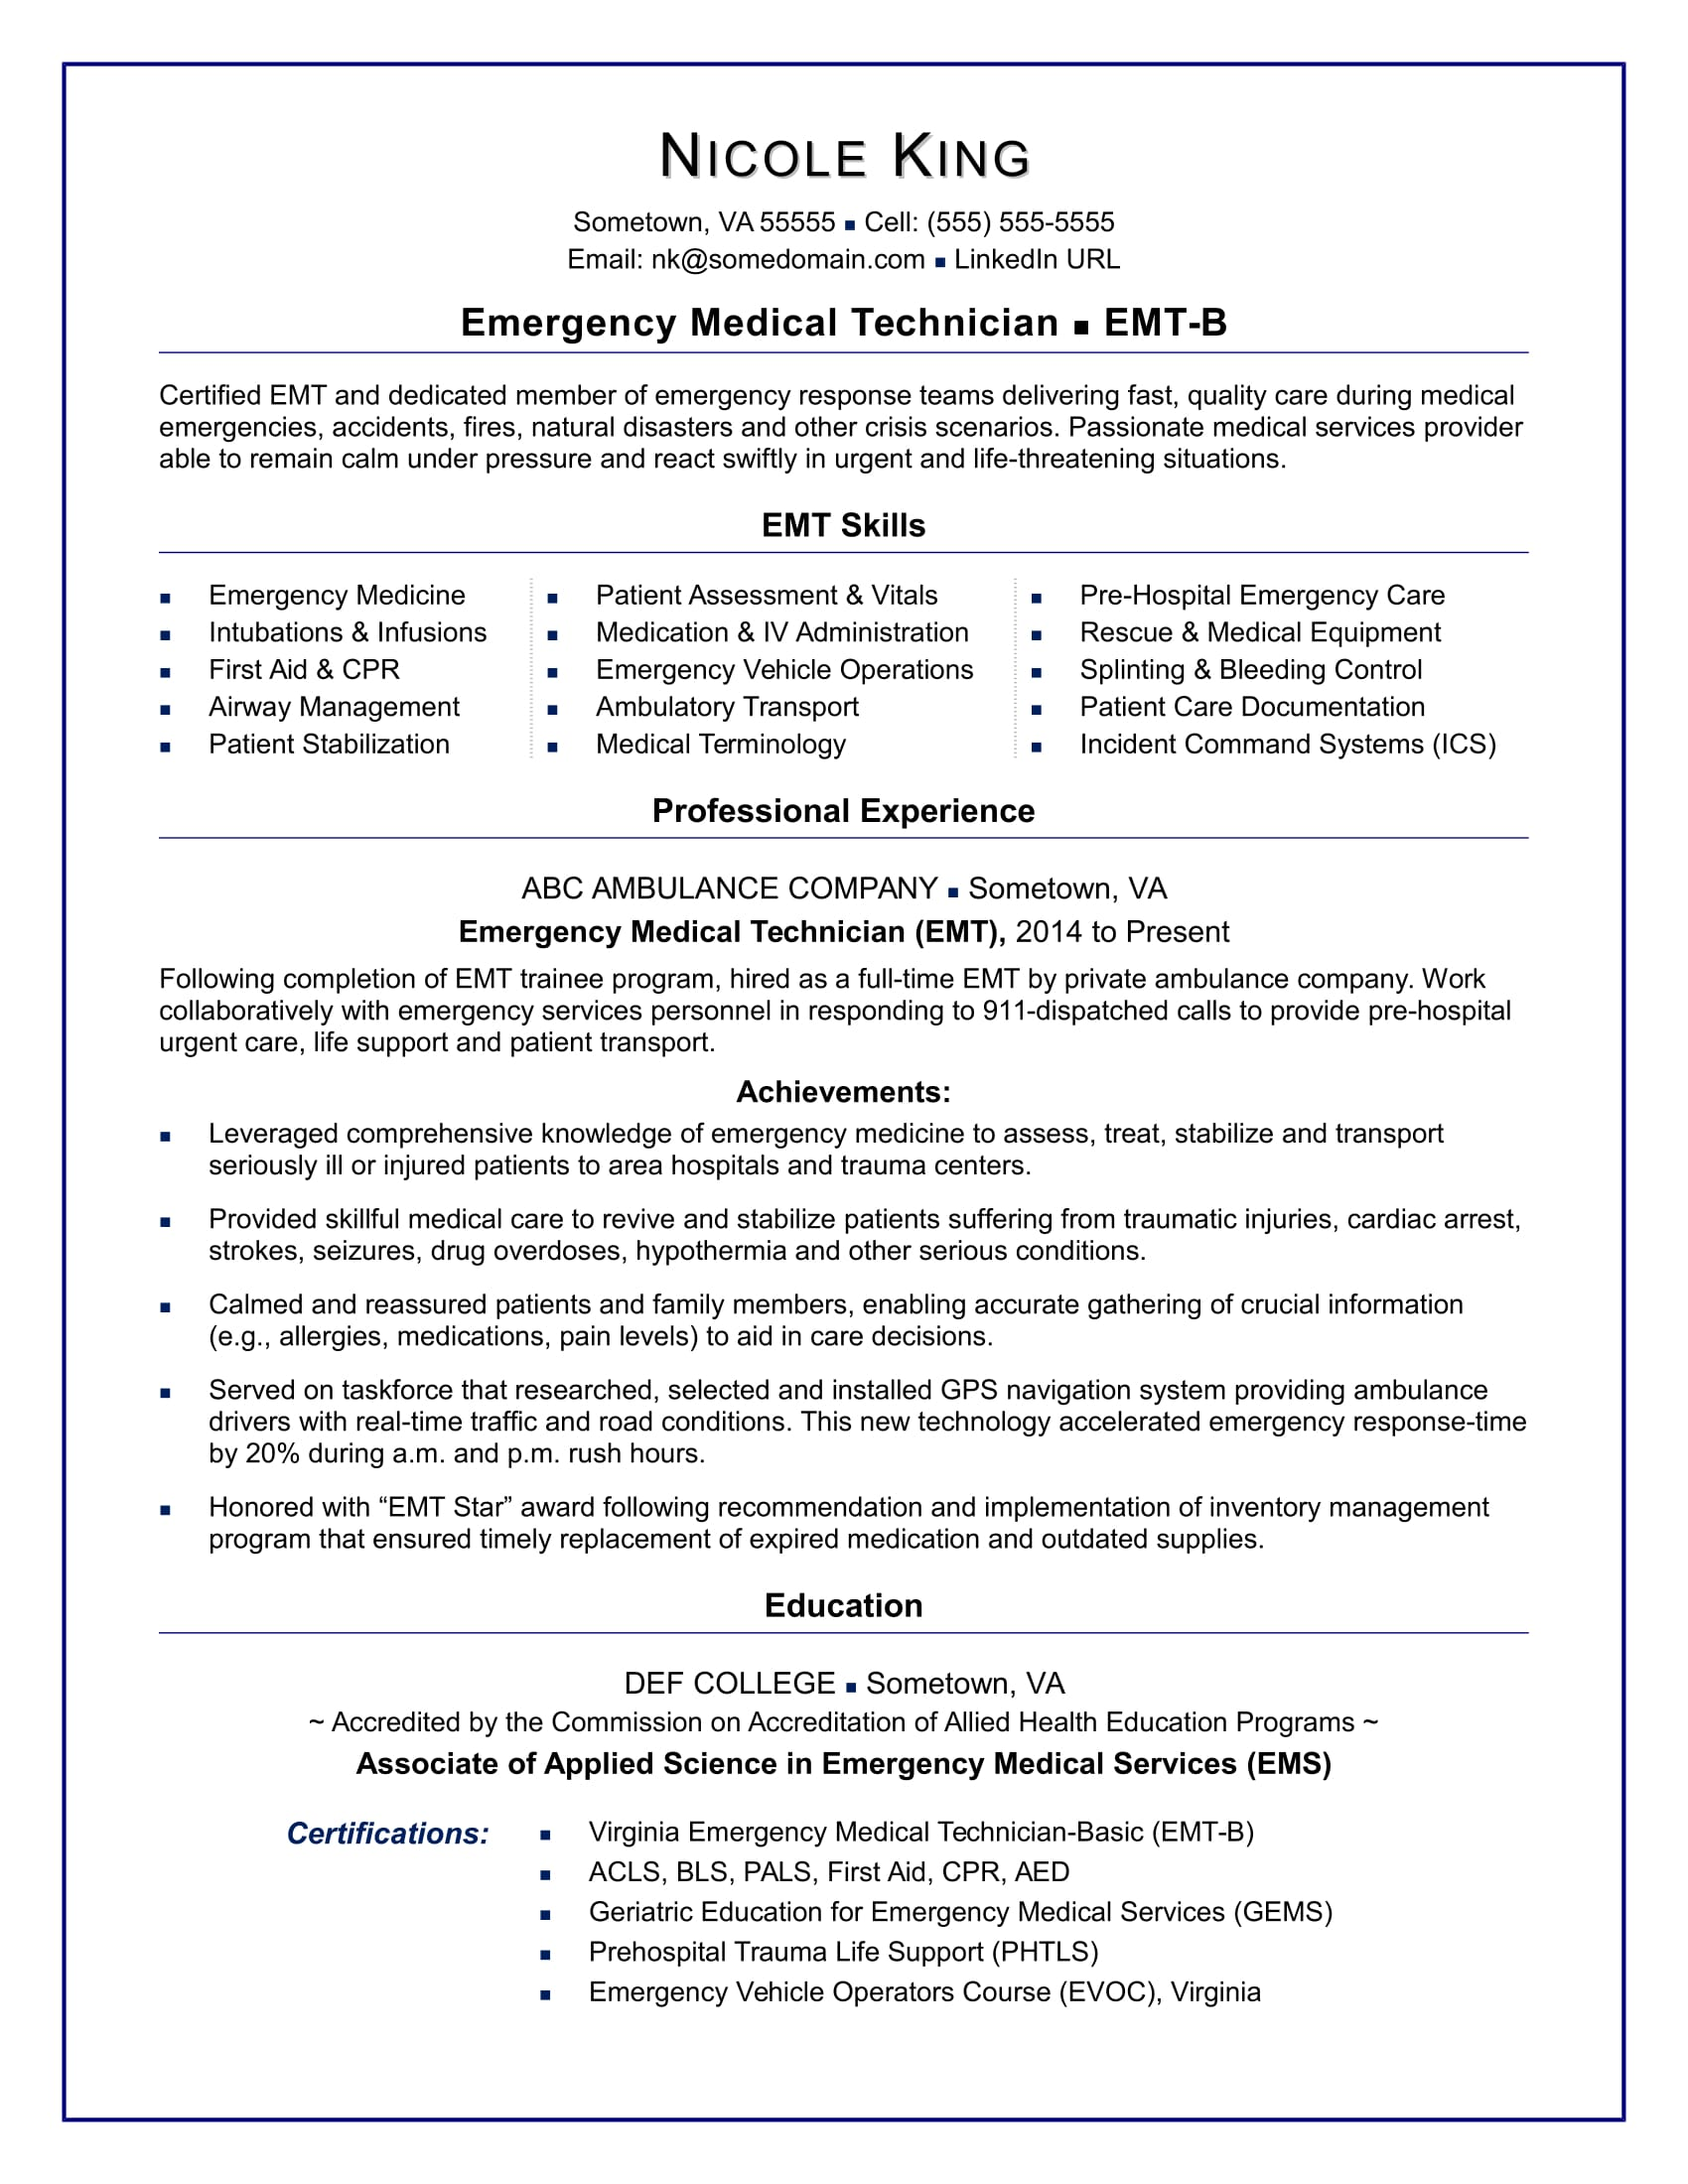 emt resume sample monster another word for knowledge on information security auditor Resume Another Word For Knowledge On Resume